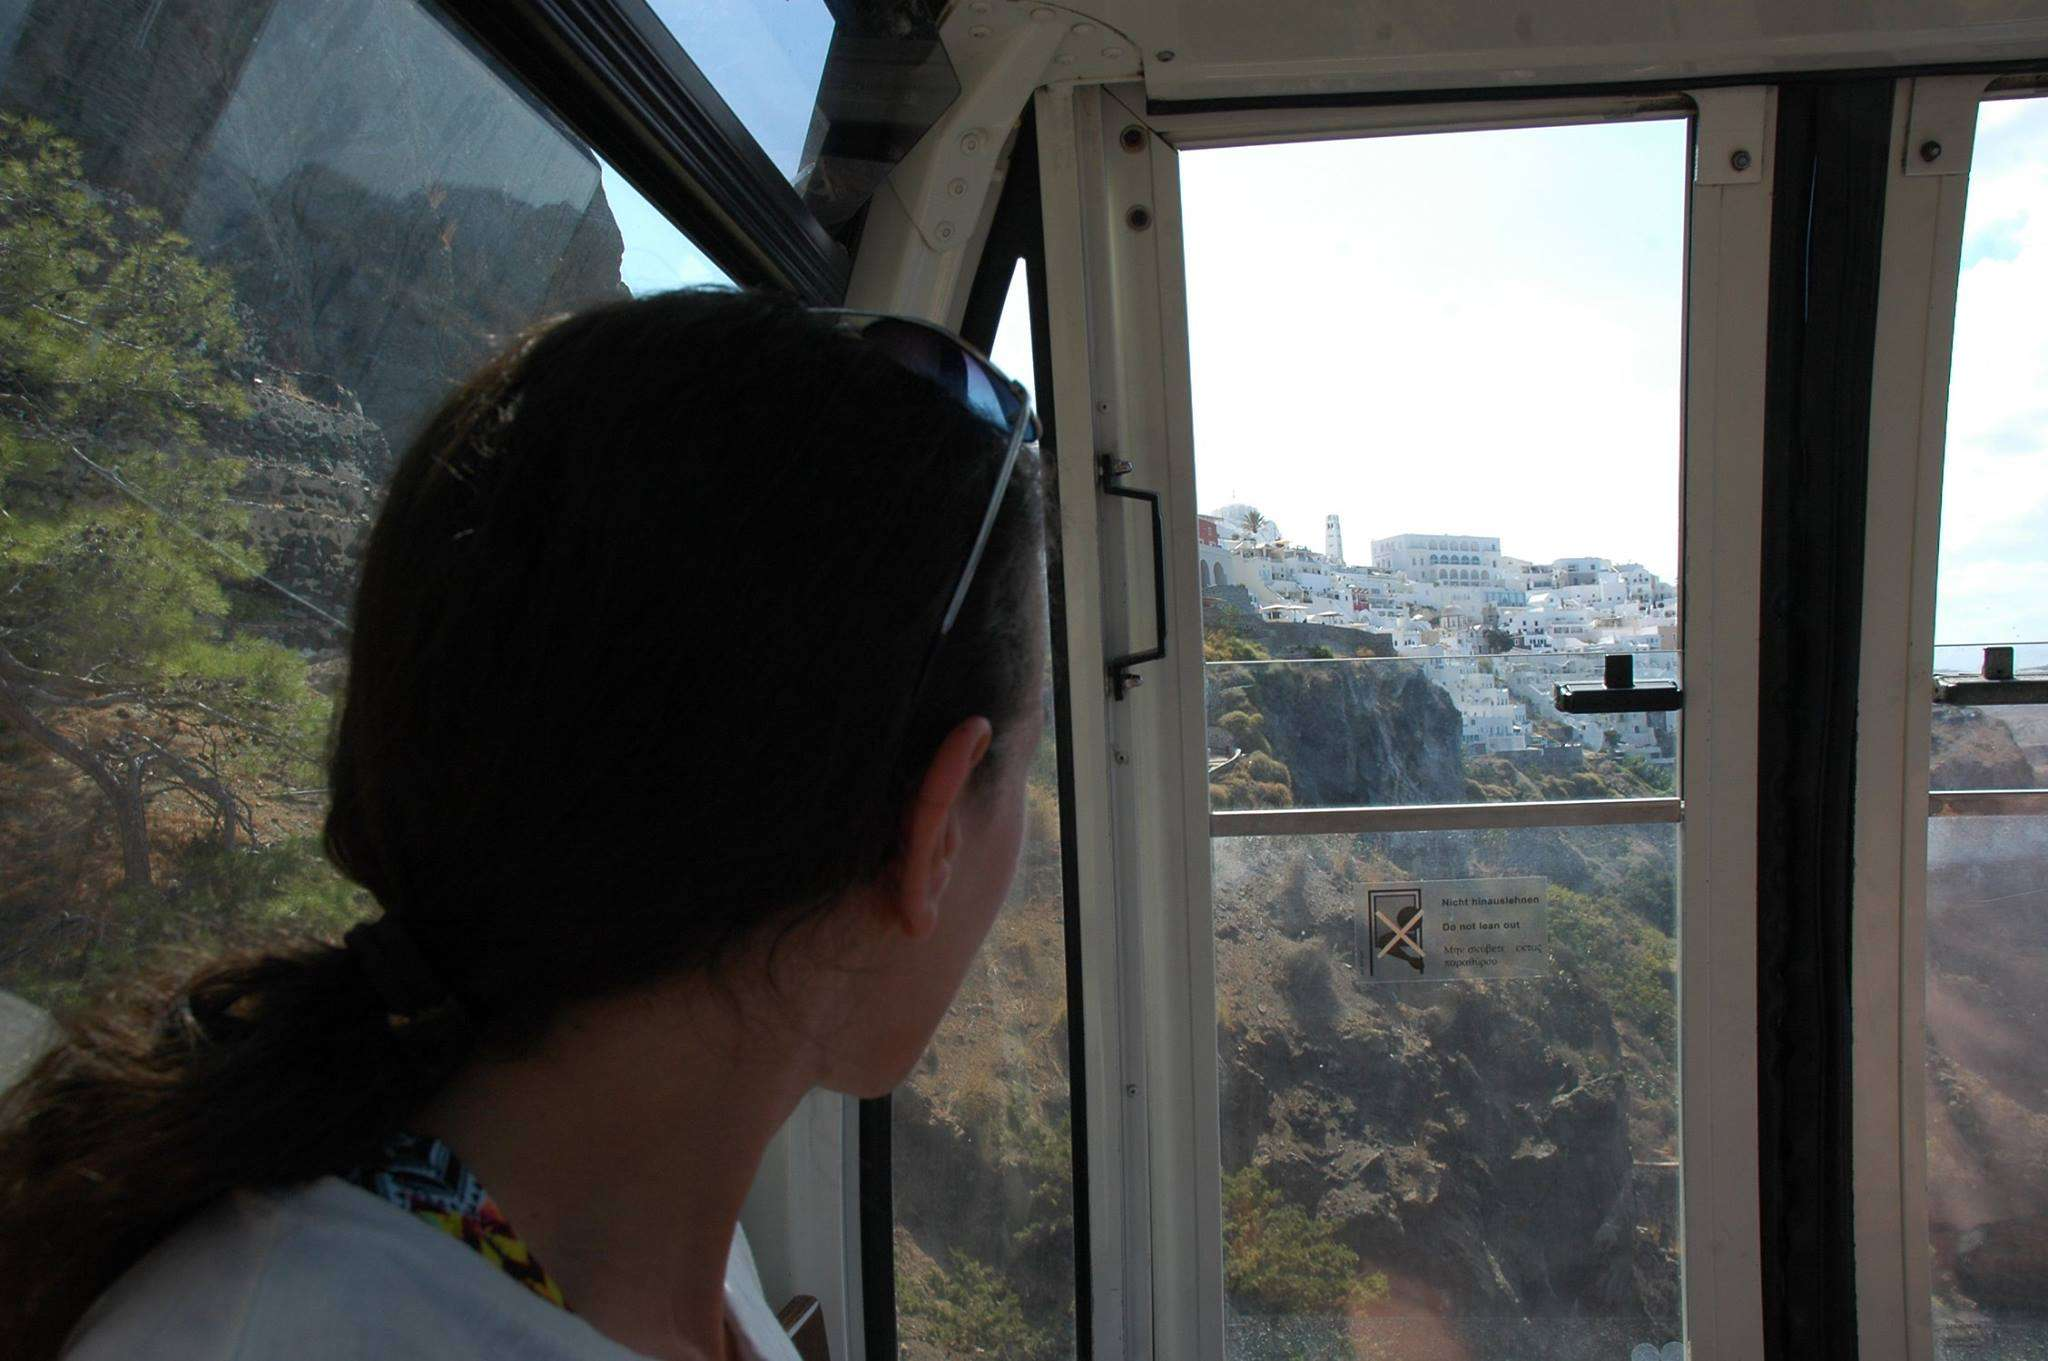 Riding the cable car in Fira, Santorini